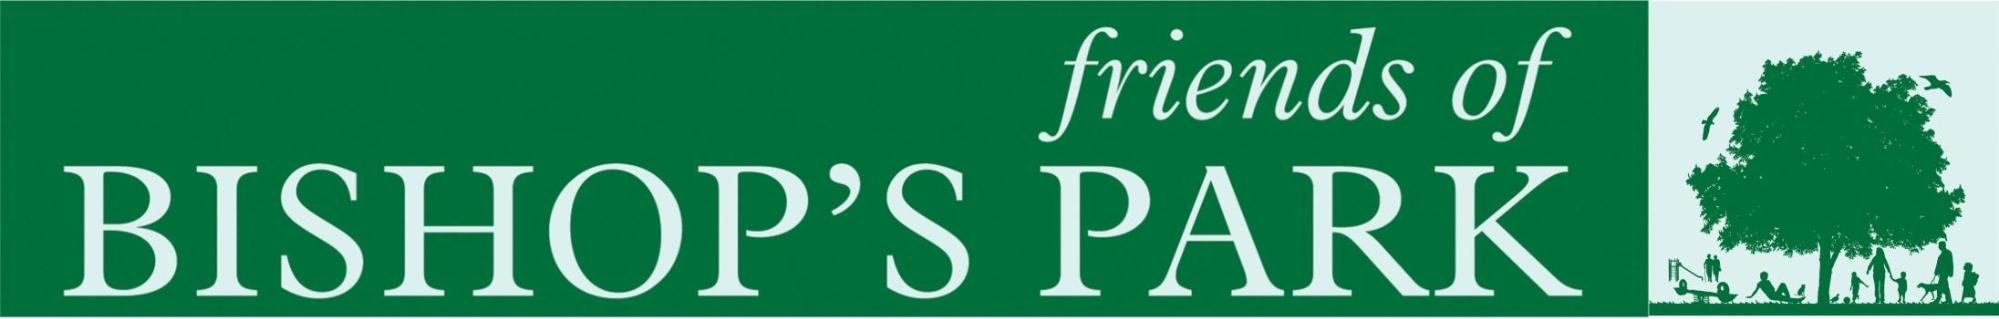 Friends of Bishops Park logo